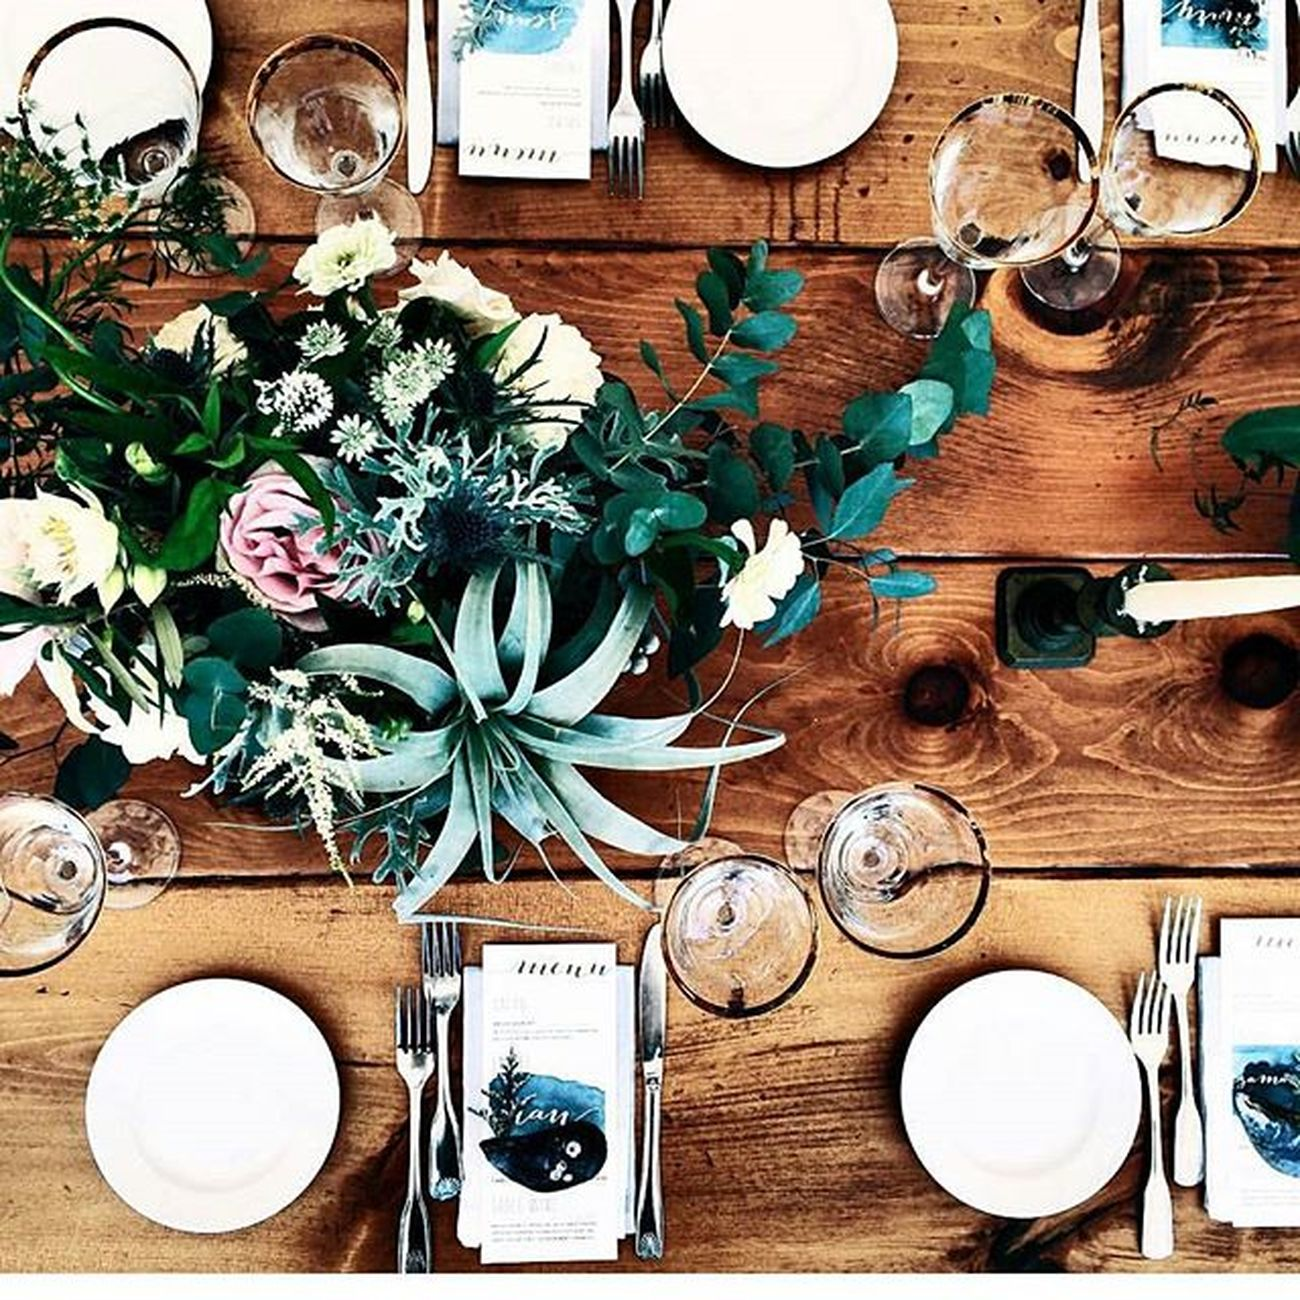 Simply stunning! TBT  to @laurenswells Lwellsevents for including my Ombre Napkins (subtle touch), for Cantupartyoftwo Wedding ! That is seriously one of the biggest Airplants I've ever seen! @wildfolkstudio 📷@cambria_grace Caligraphy @hushlettering paper @bevilacquadesign Wood Floral Wild Events Eventstyling Tablescape Dining Headtable Weddingday  Party Thedennisinn Capecod Capewedding